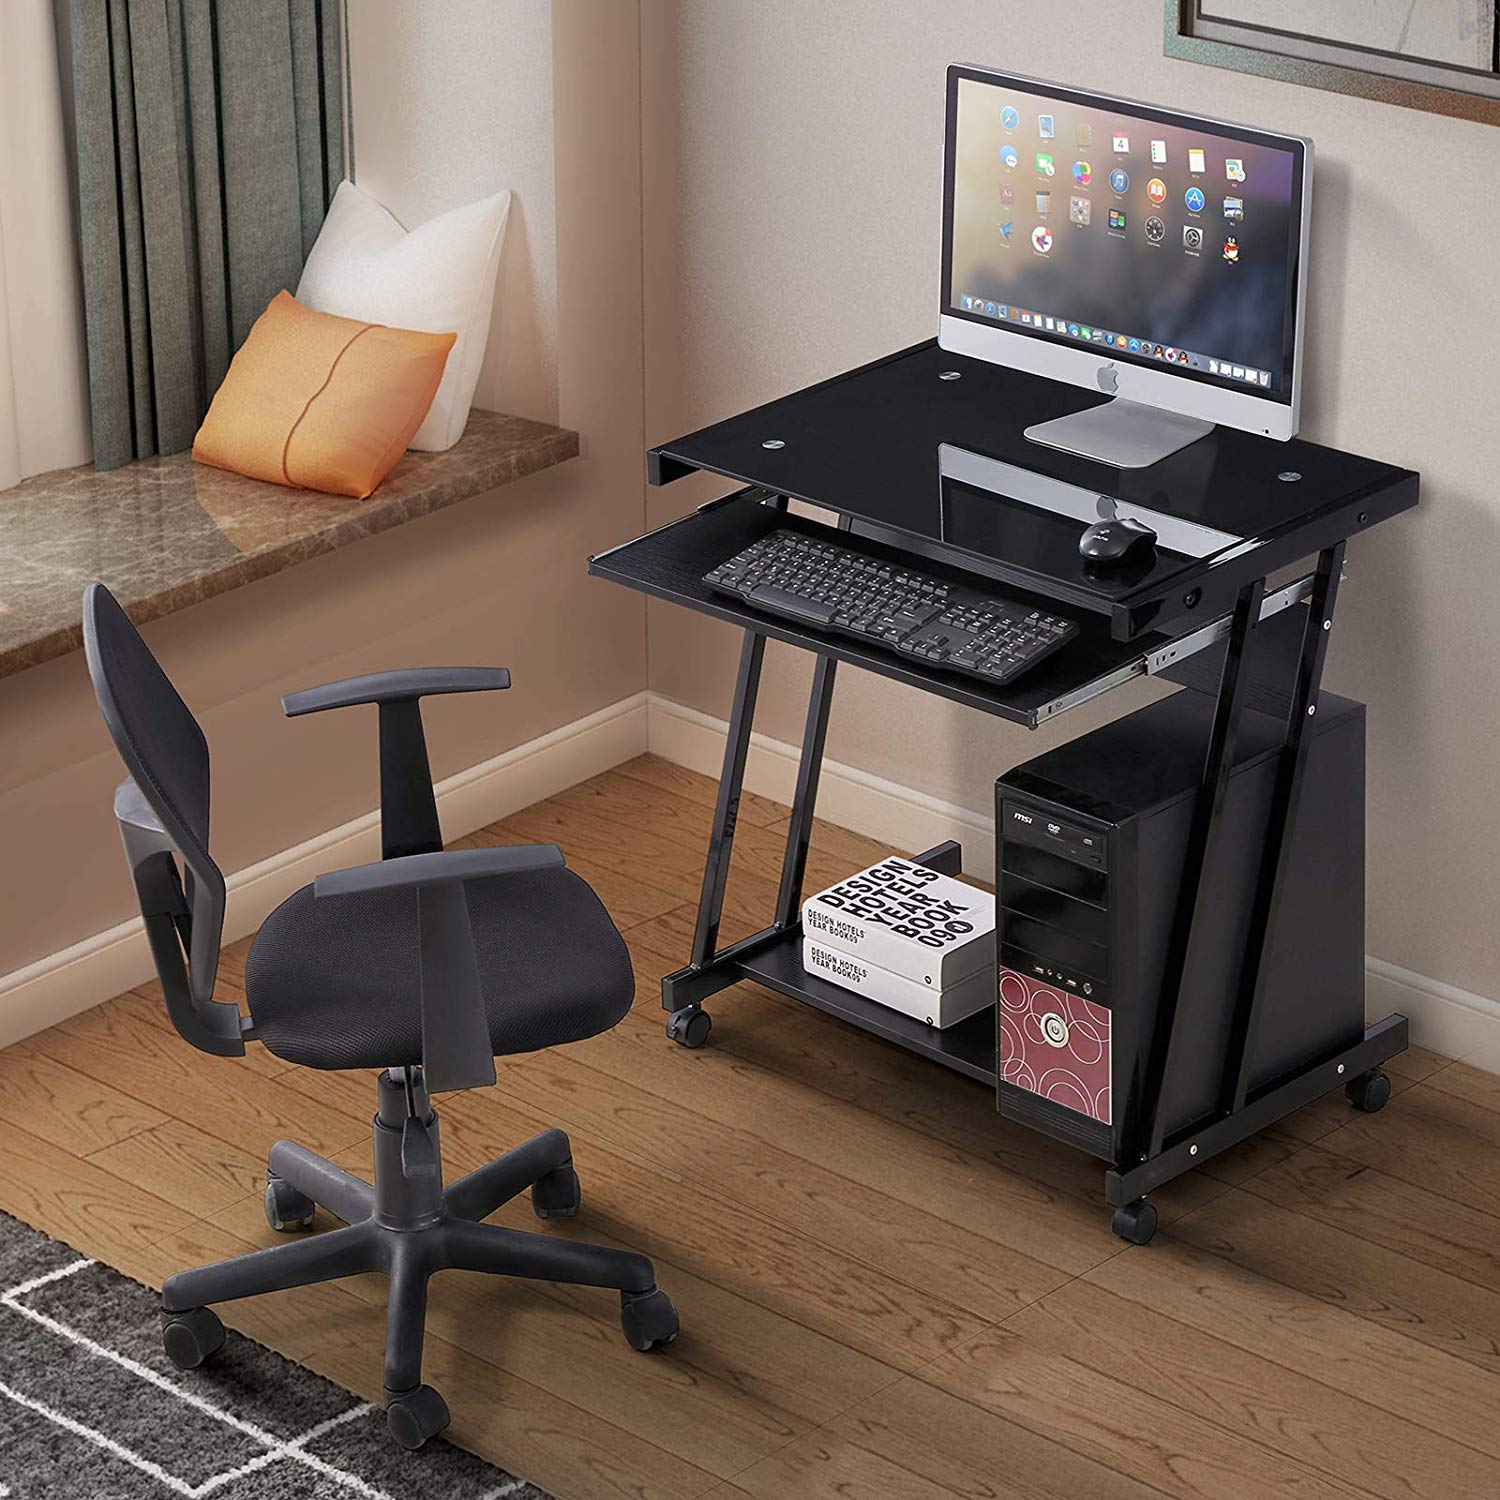 Mecor Tempered Glass Black Computer Desk w/4 Wheels, Keyboard Tray, CPU Power Stand, Metal Frame Laptop PC Table Workstation Home Office